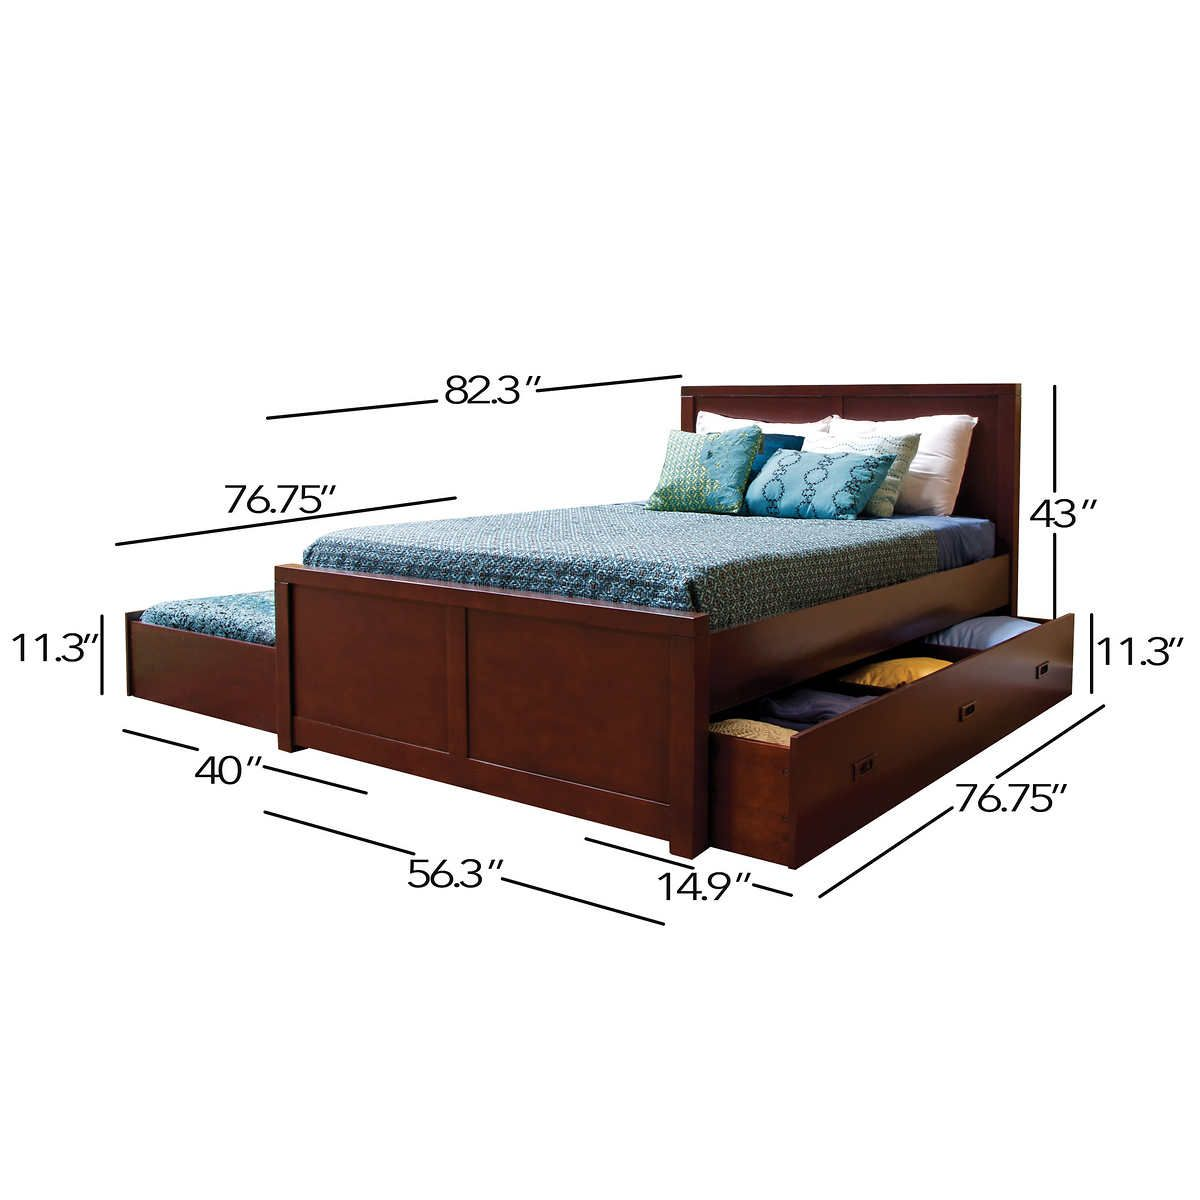 Queen Bed With Trundle Underneath Easy Solution For Sleep Over Home Build Designs Queen Size Trundle Bed Trundle Bed Frame Trundle Bed